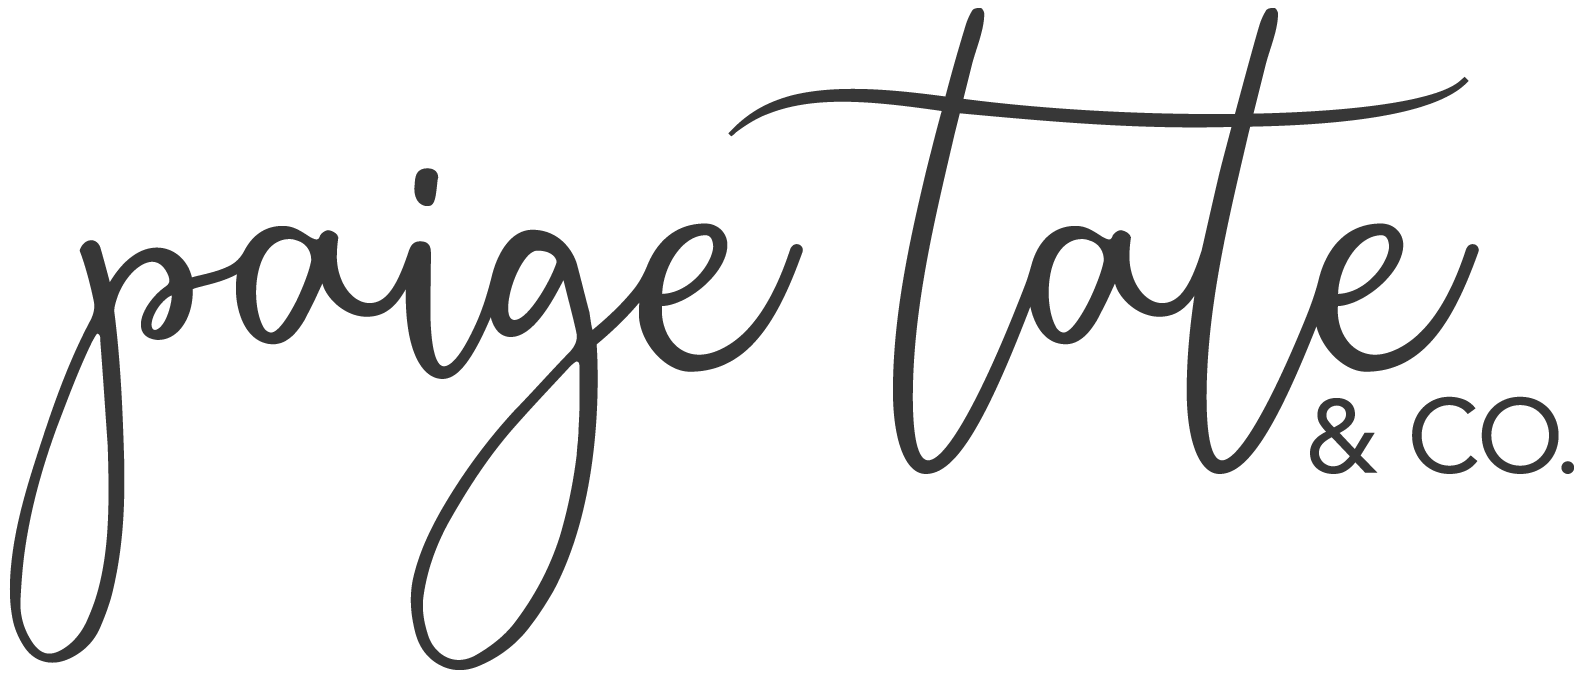 Paige-Tate-&-Co-Logo.png